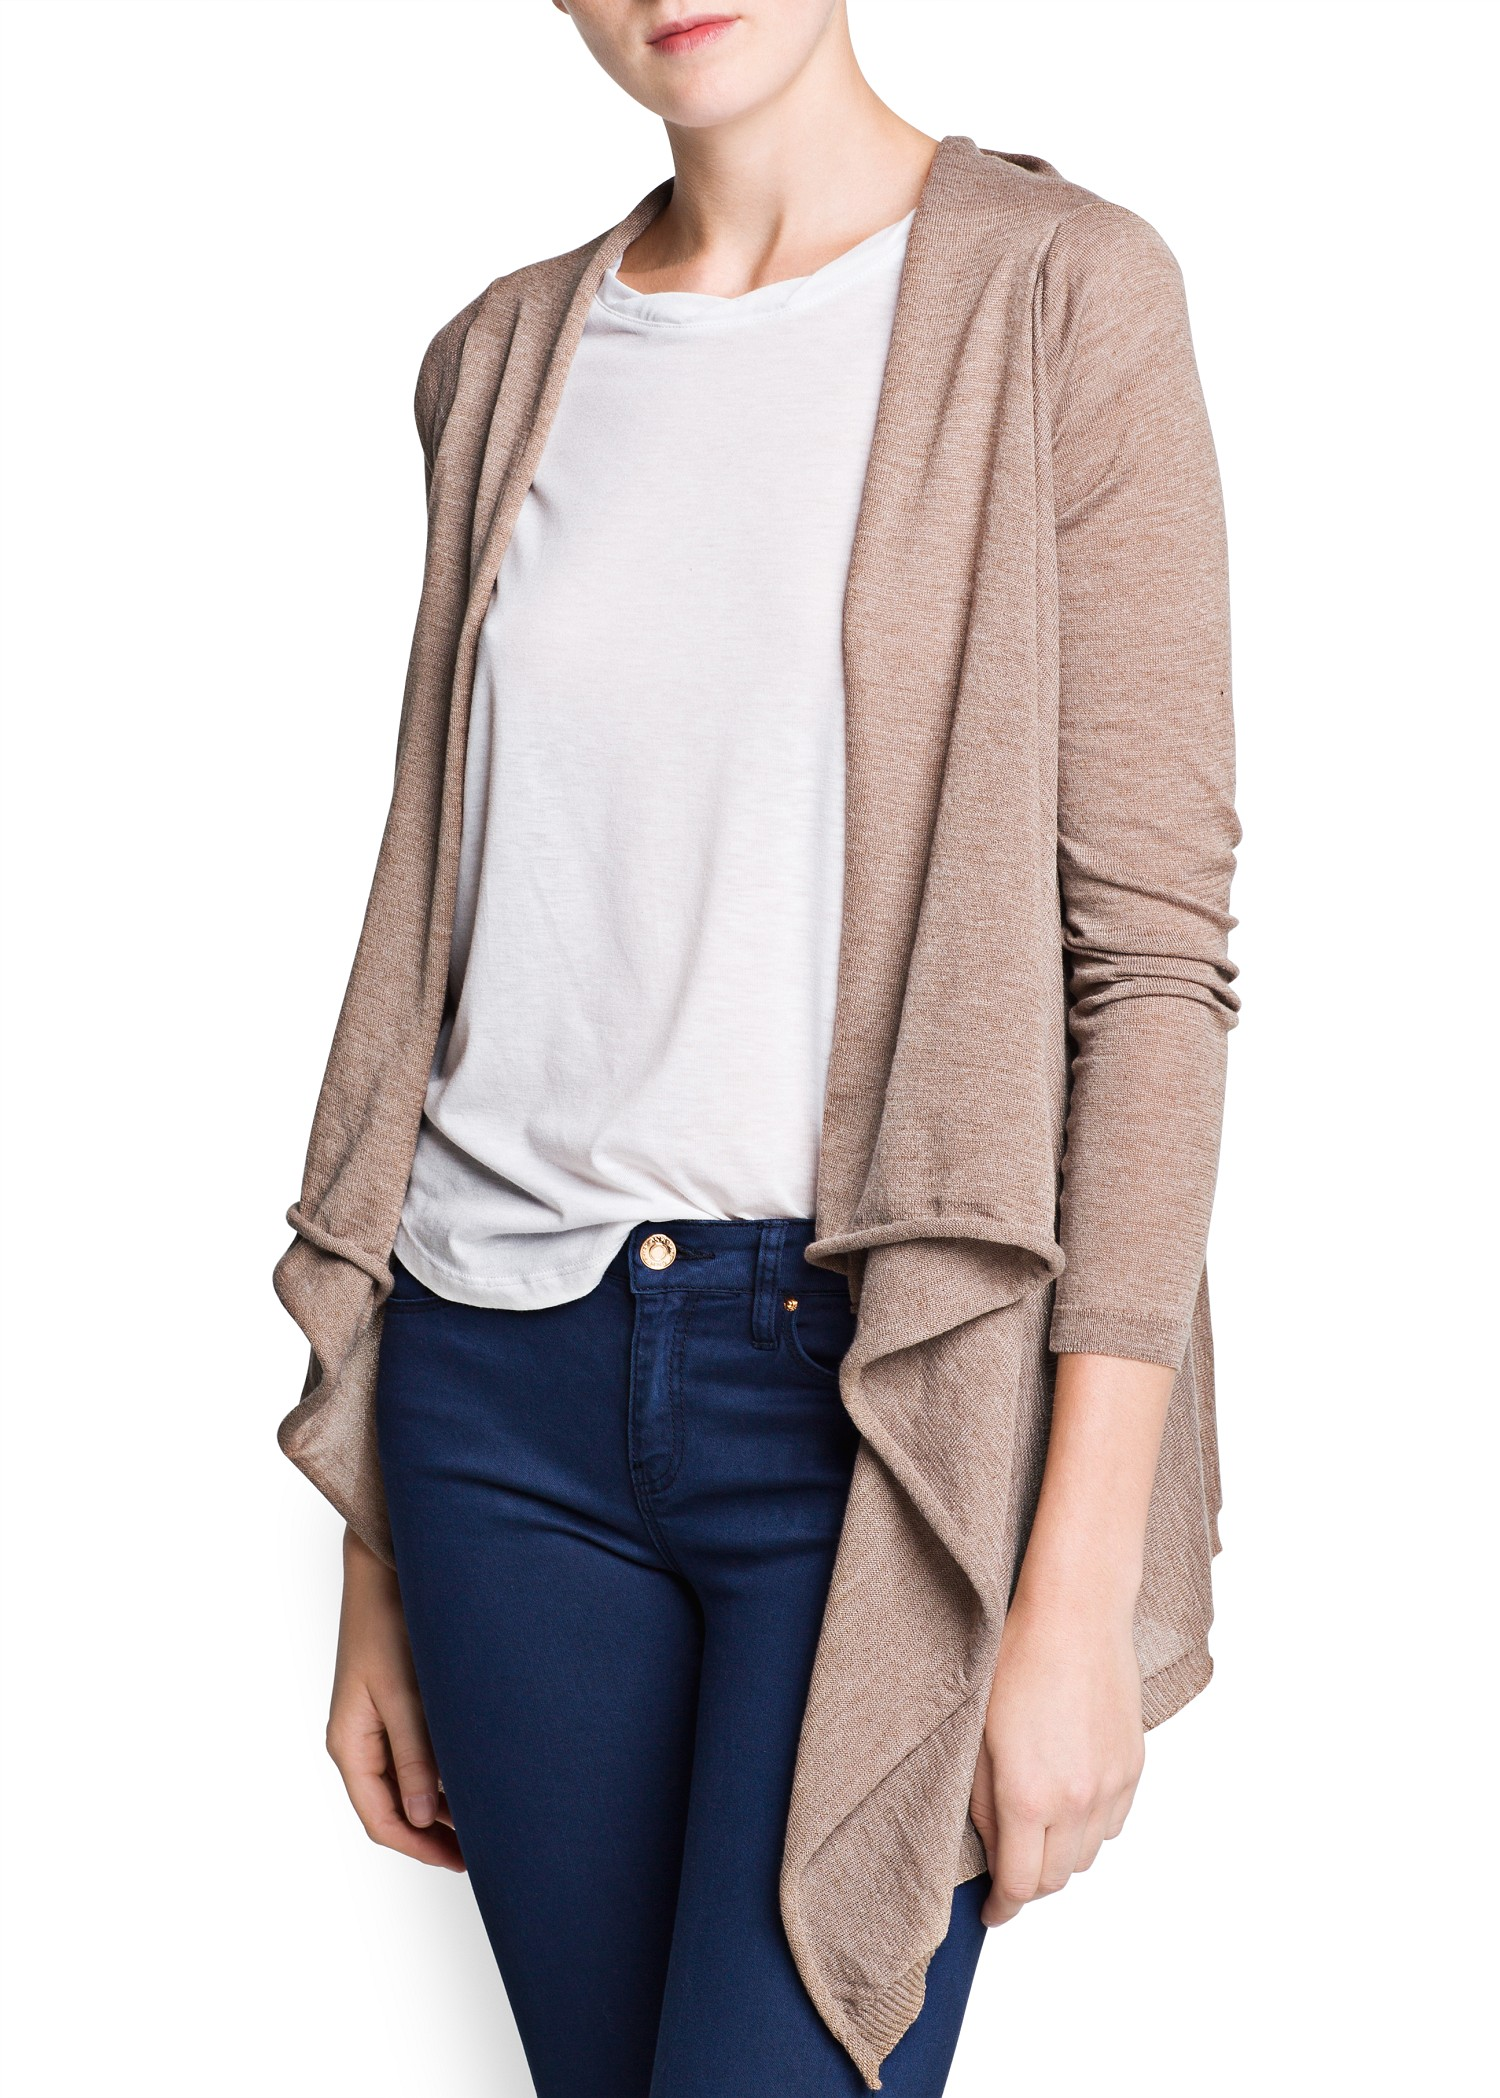 Mango Waterfall Cardigan in Natural | Lyst